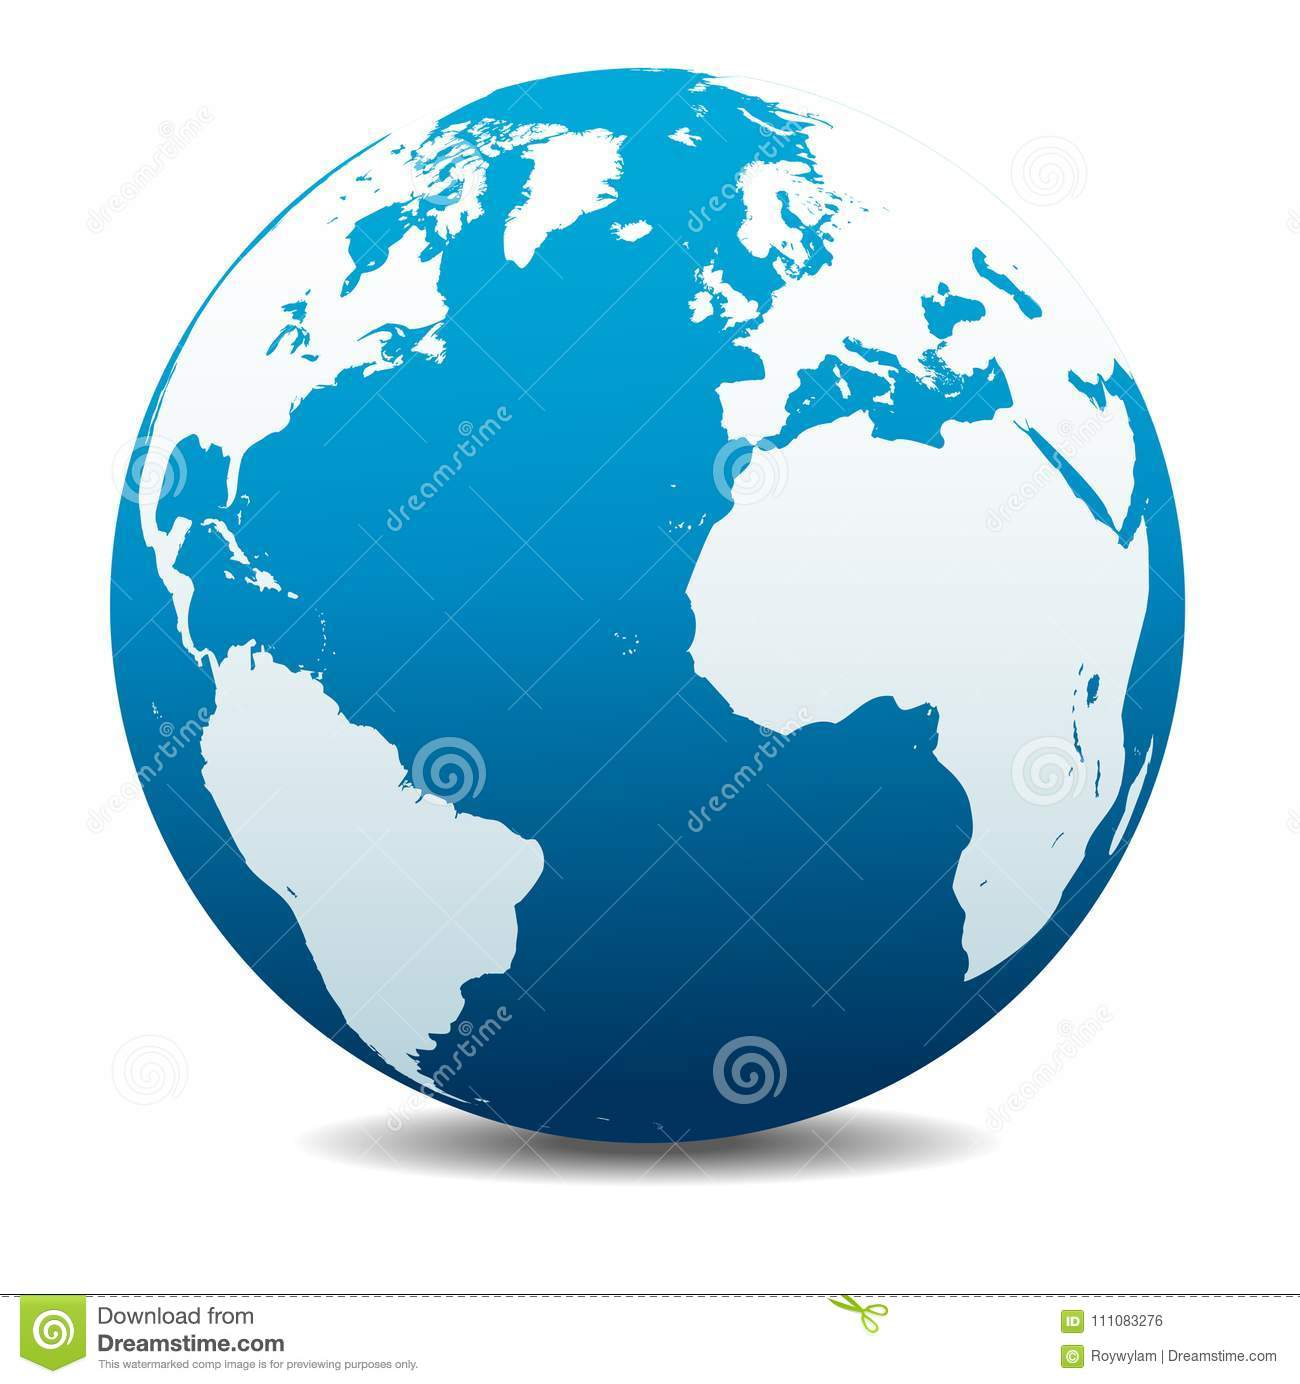 Europe, North And South America, Africa Global World Planet ... on global map india, satellite of earth, global satellite maps, aerial photography of earth, blackline of earth, gps of earth, globe of earth, global view of the earth, resources of earth, global climate earth, global maps of north pole, global map view, global map water, united states of earth, global maps live, radar of earth, global map light, global map continents, global hemisphere map, global earth map residential homes,